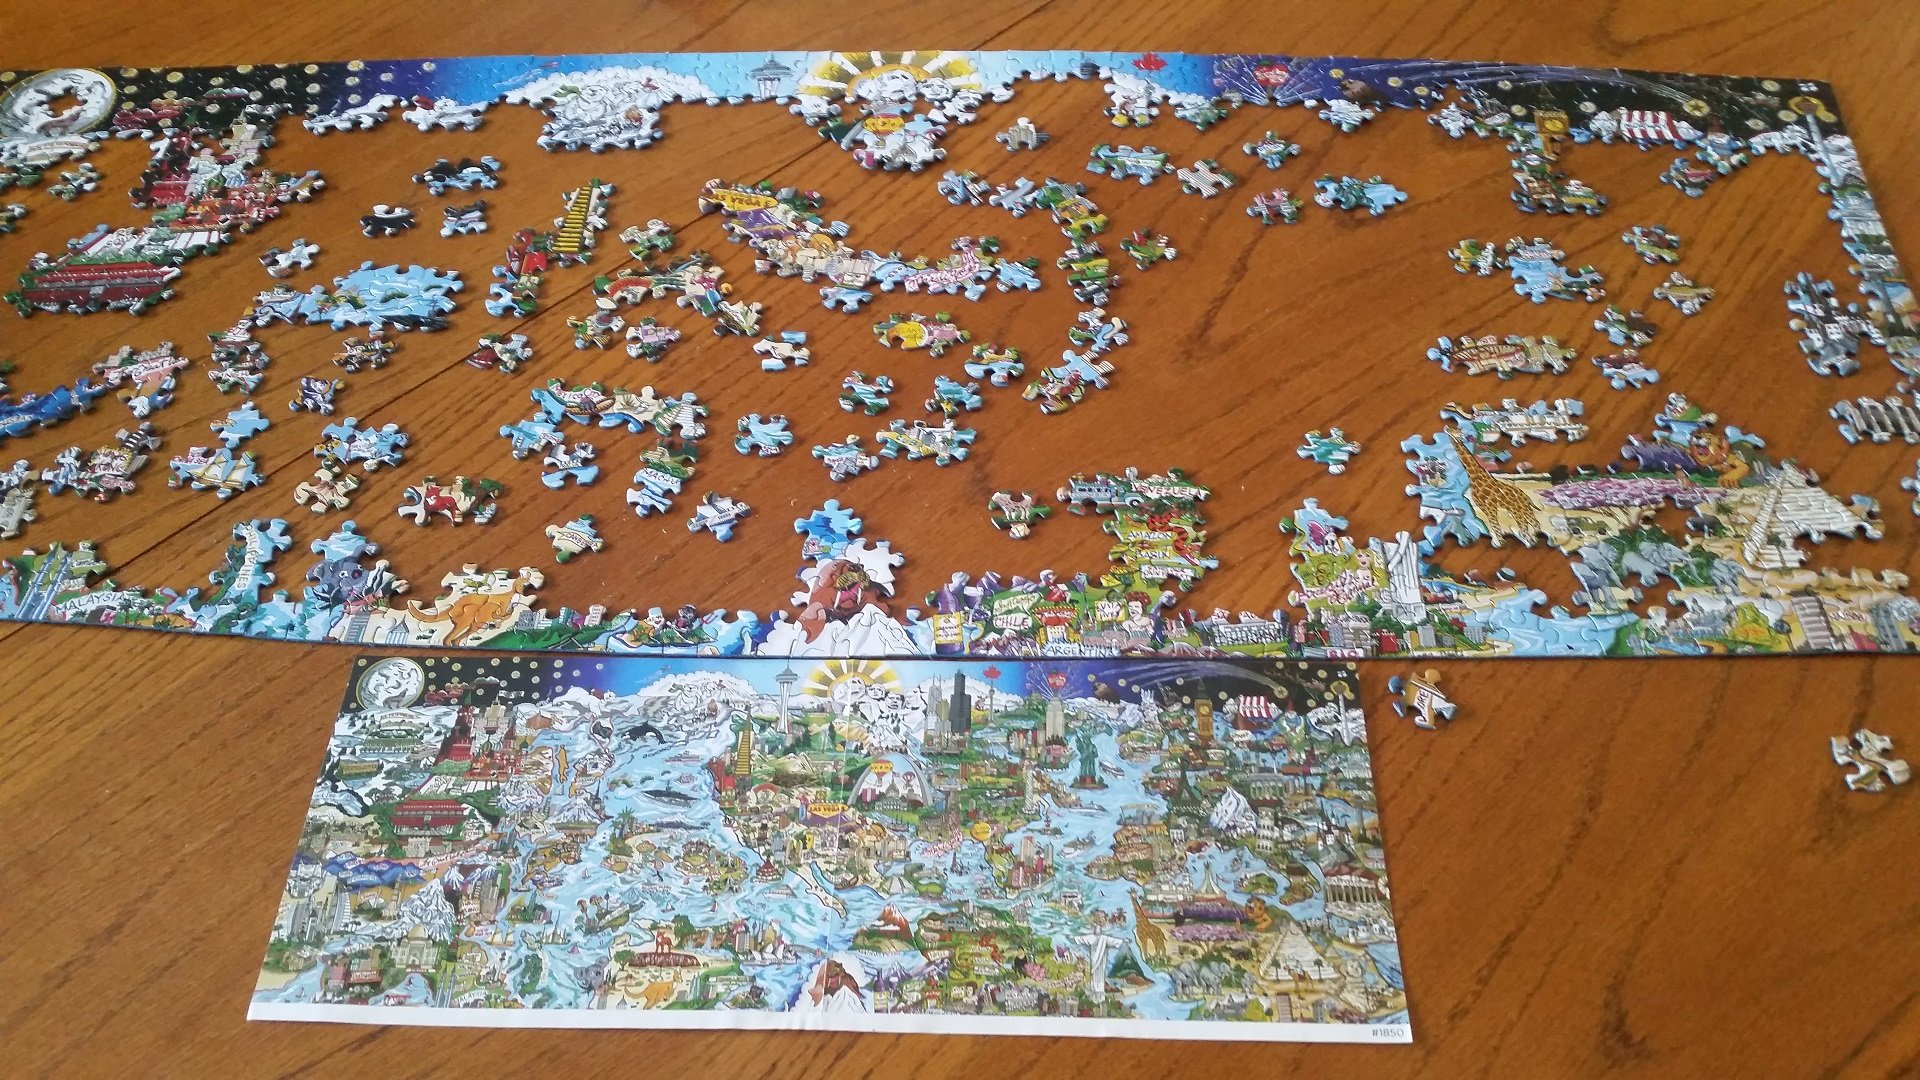 Jigsaw puzzles are extremely cool, go do a jigsaw puzzle